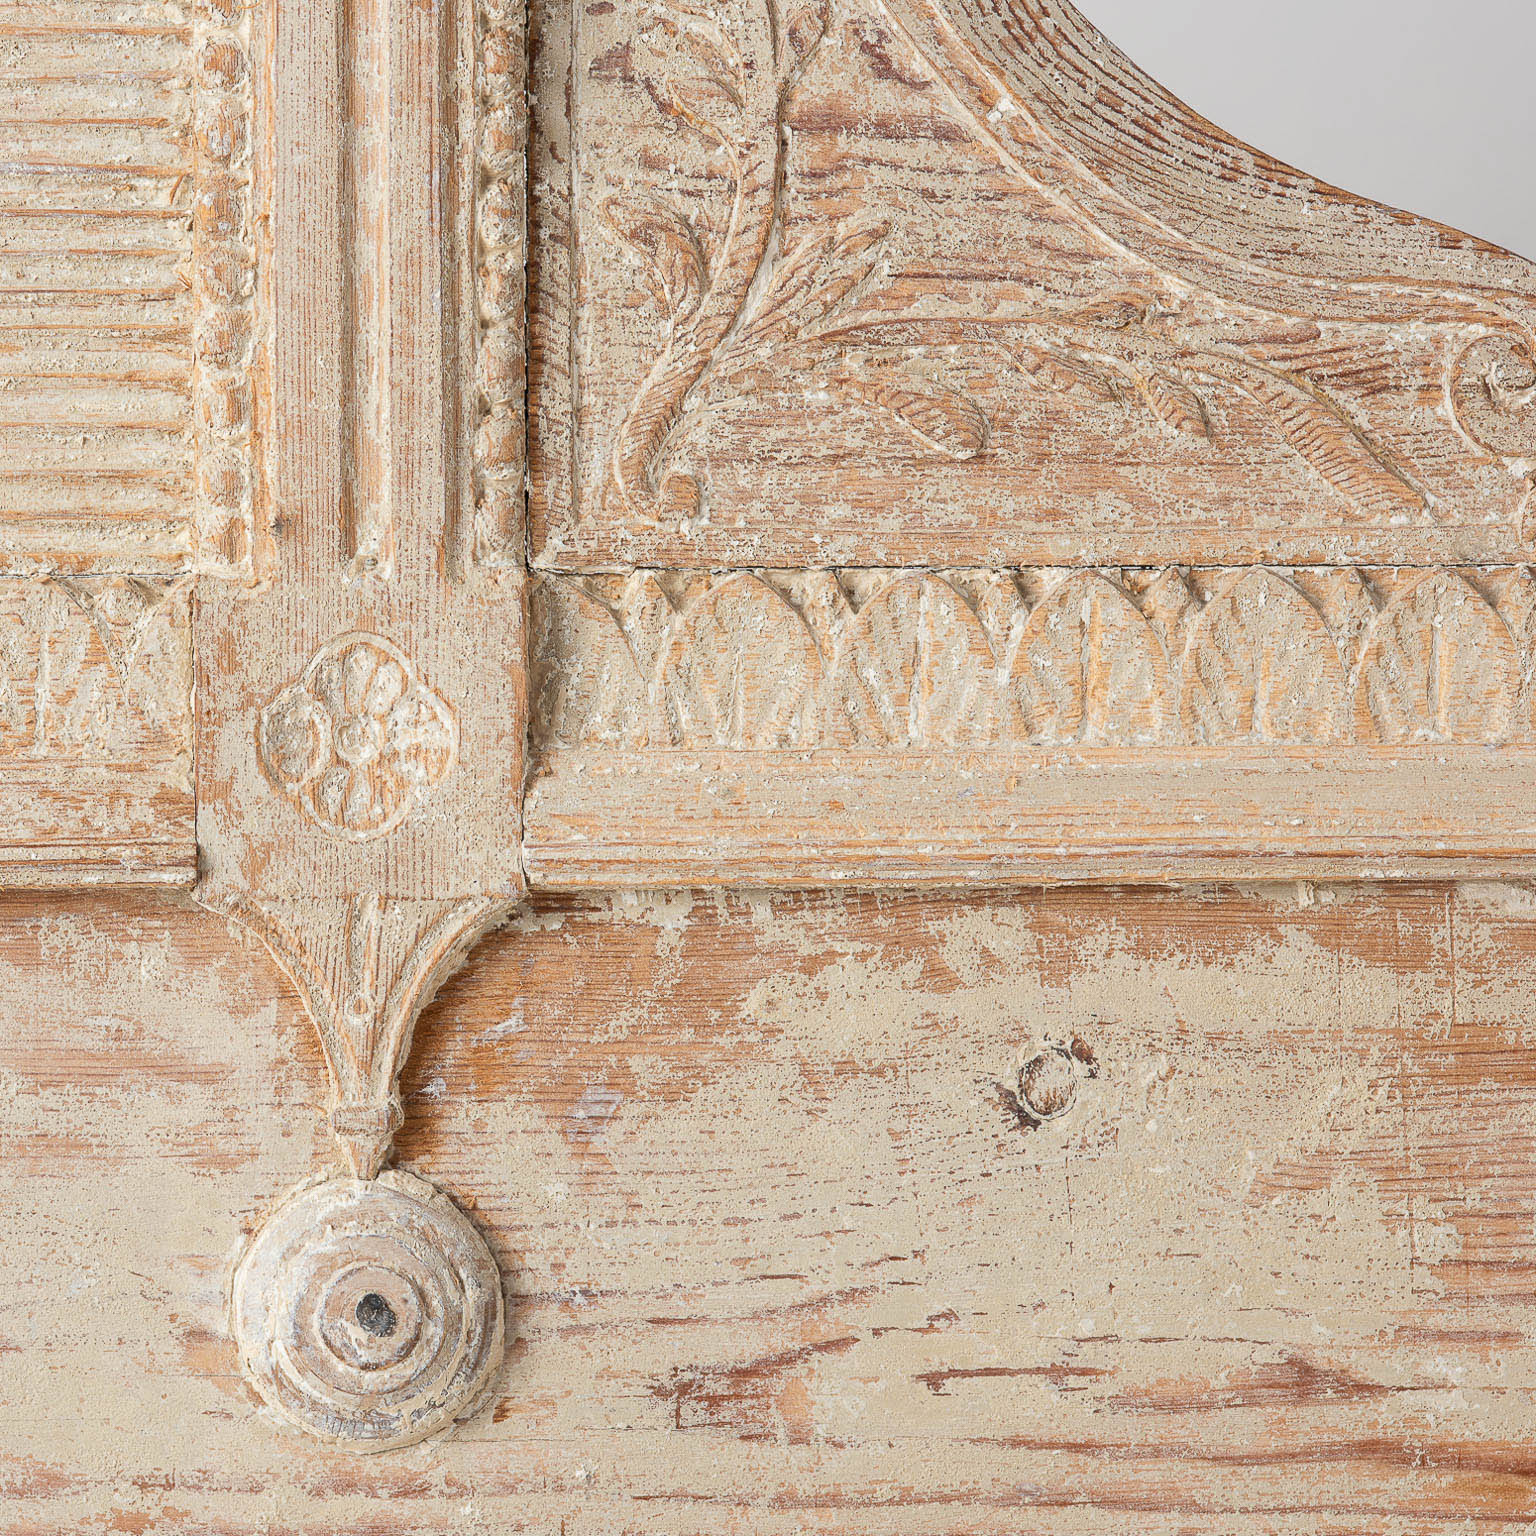 Surprising Swedish Gustavian Period Bench In Original Paint With Elaborate Bow Circa 1790 Bralicious Painted Fabric Chair Ideas Braliciousco